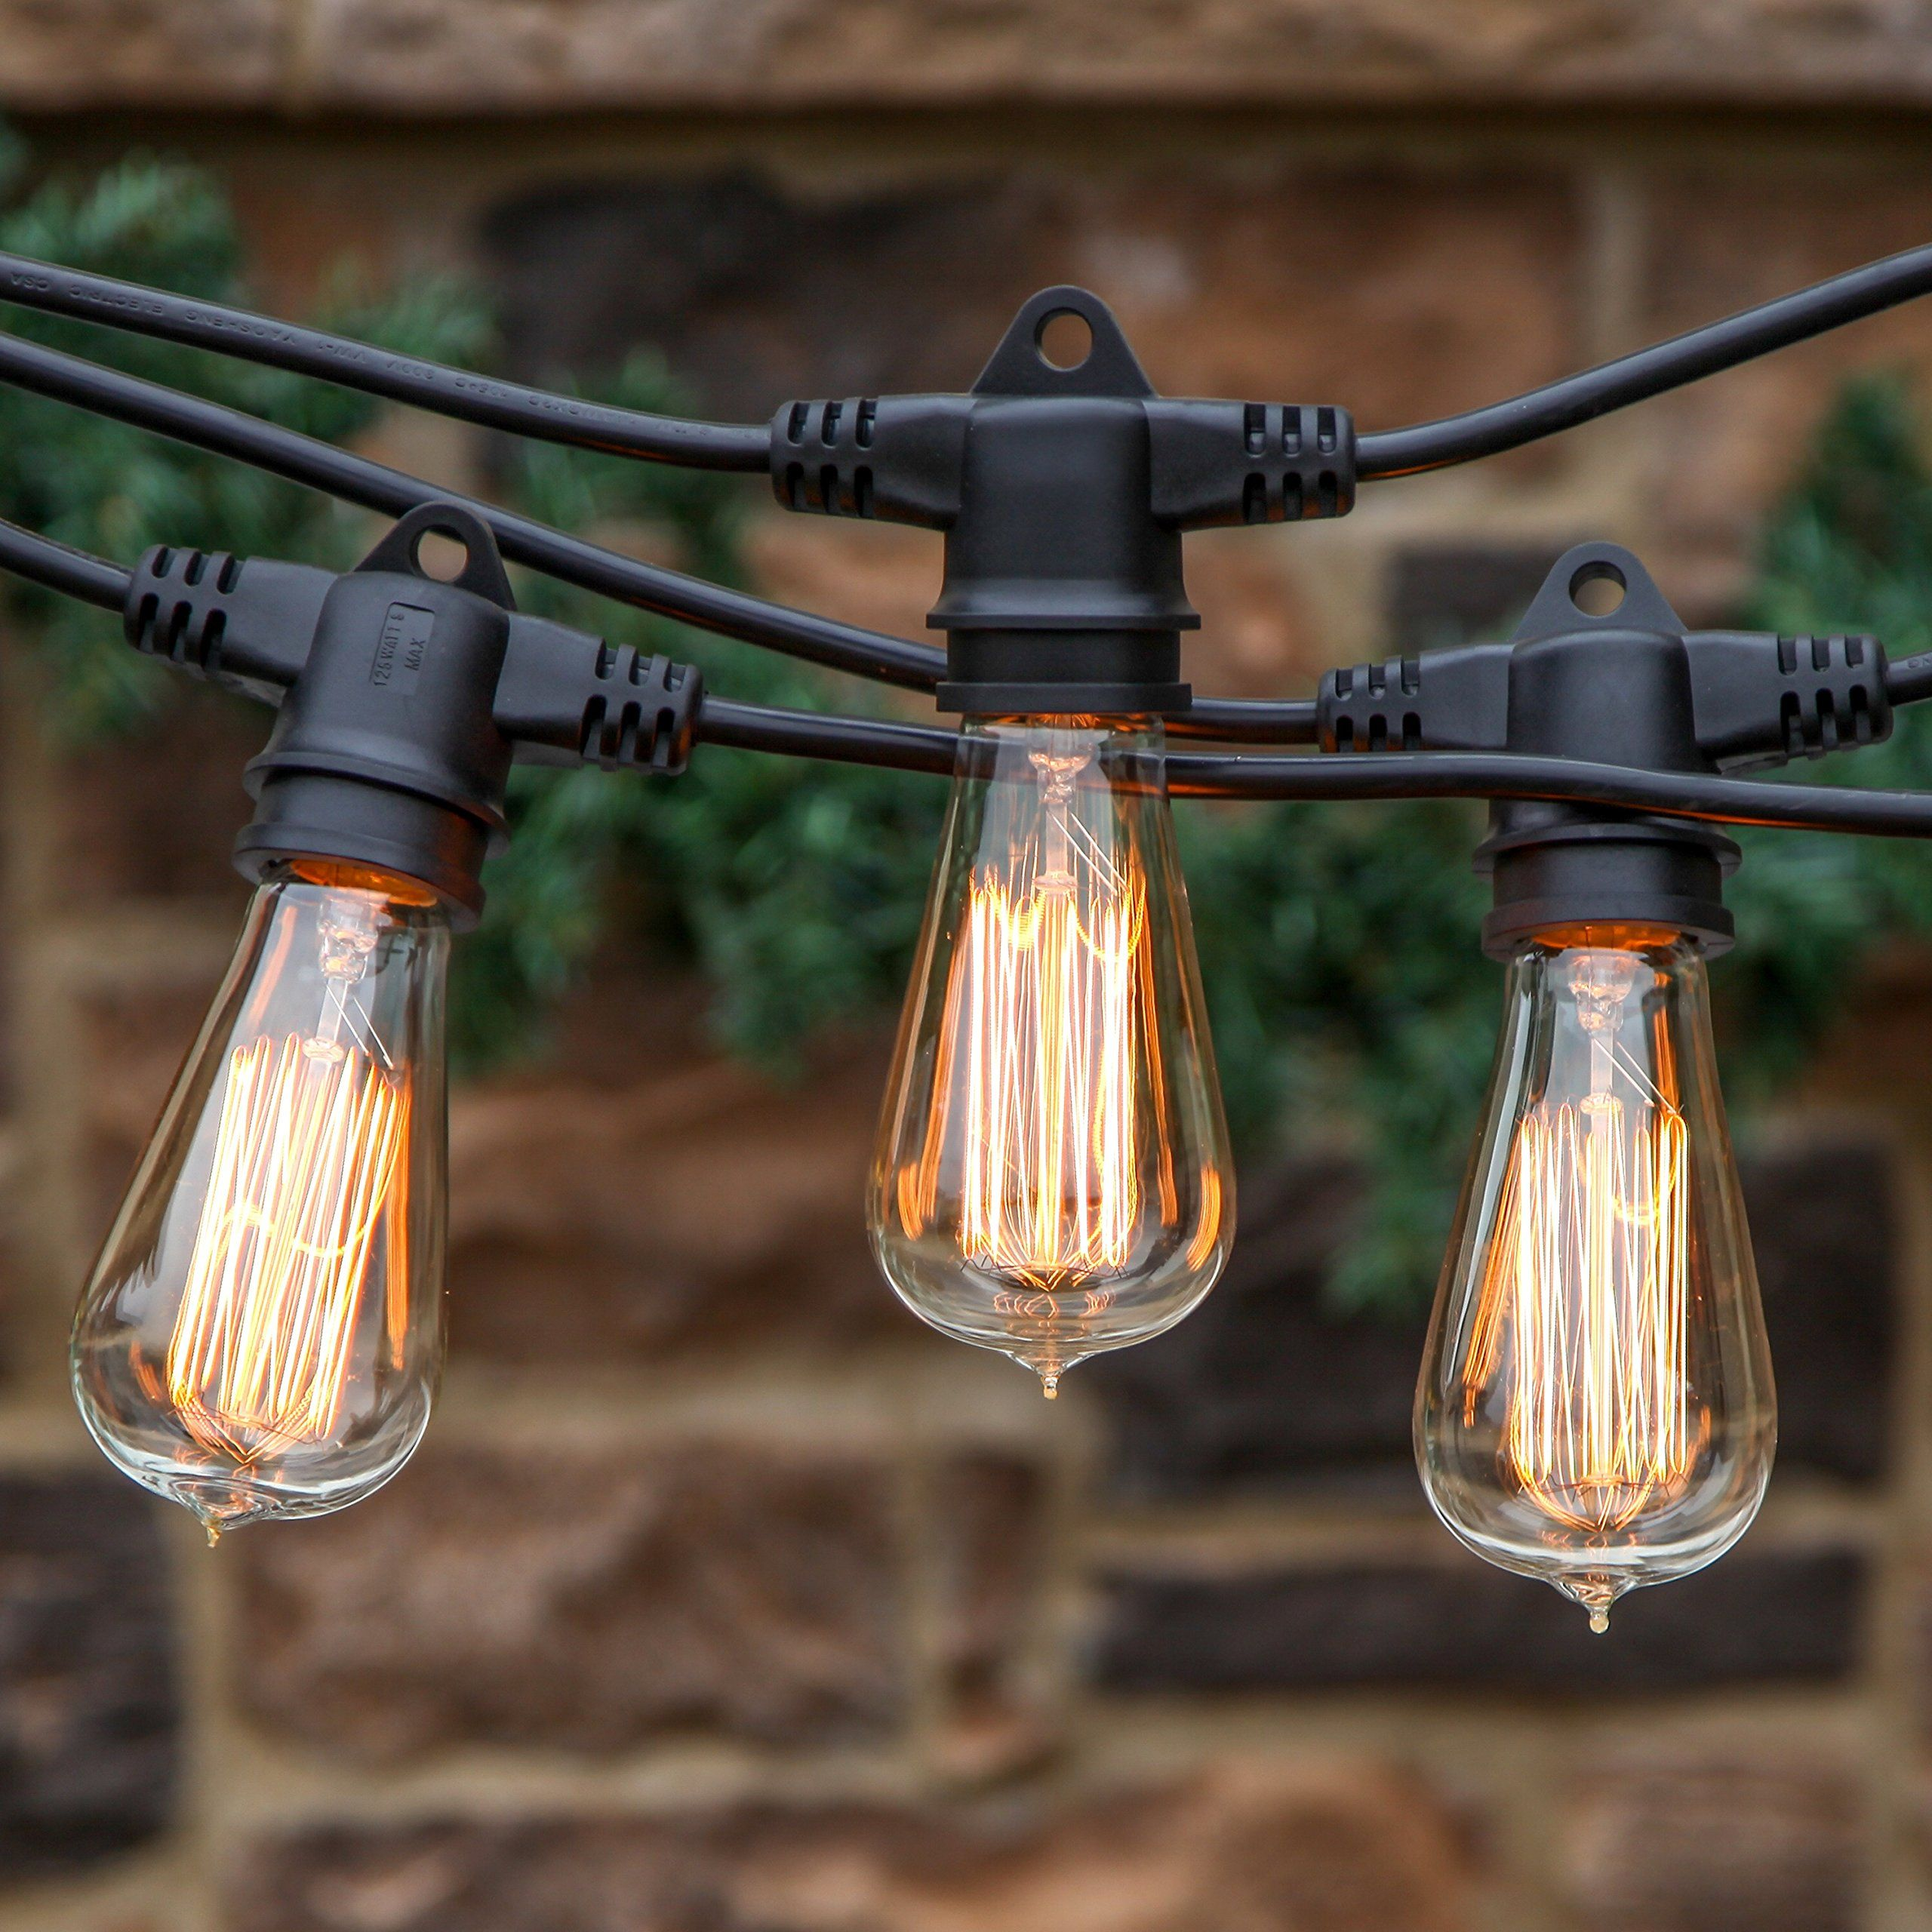 20 stunning rustic edison bulbs wedding decor ideas ambience pro vintage edition outdoor commercial string lights with nostalgic edison bulbs aloadofball Image collections